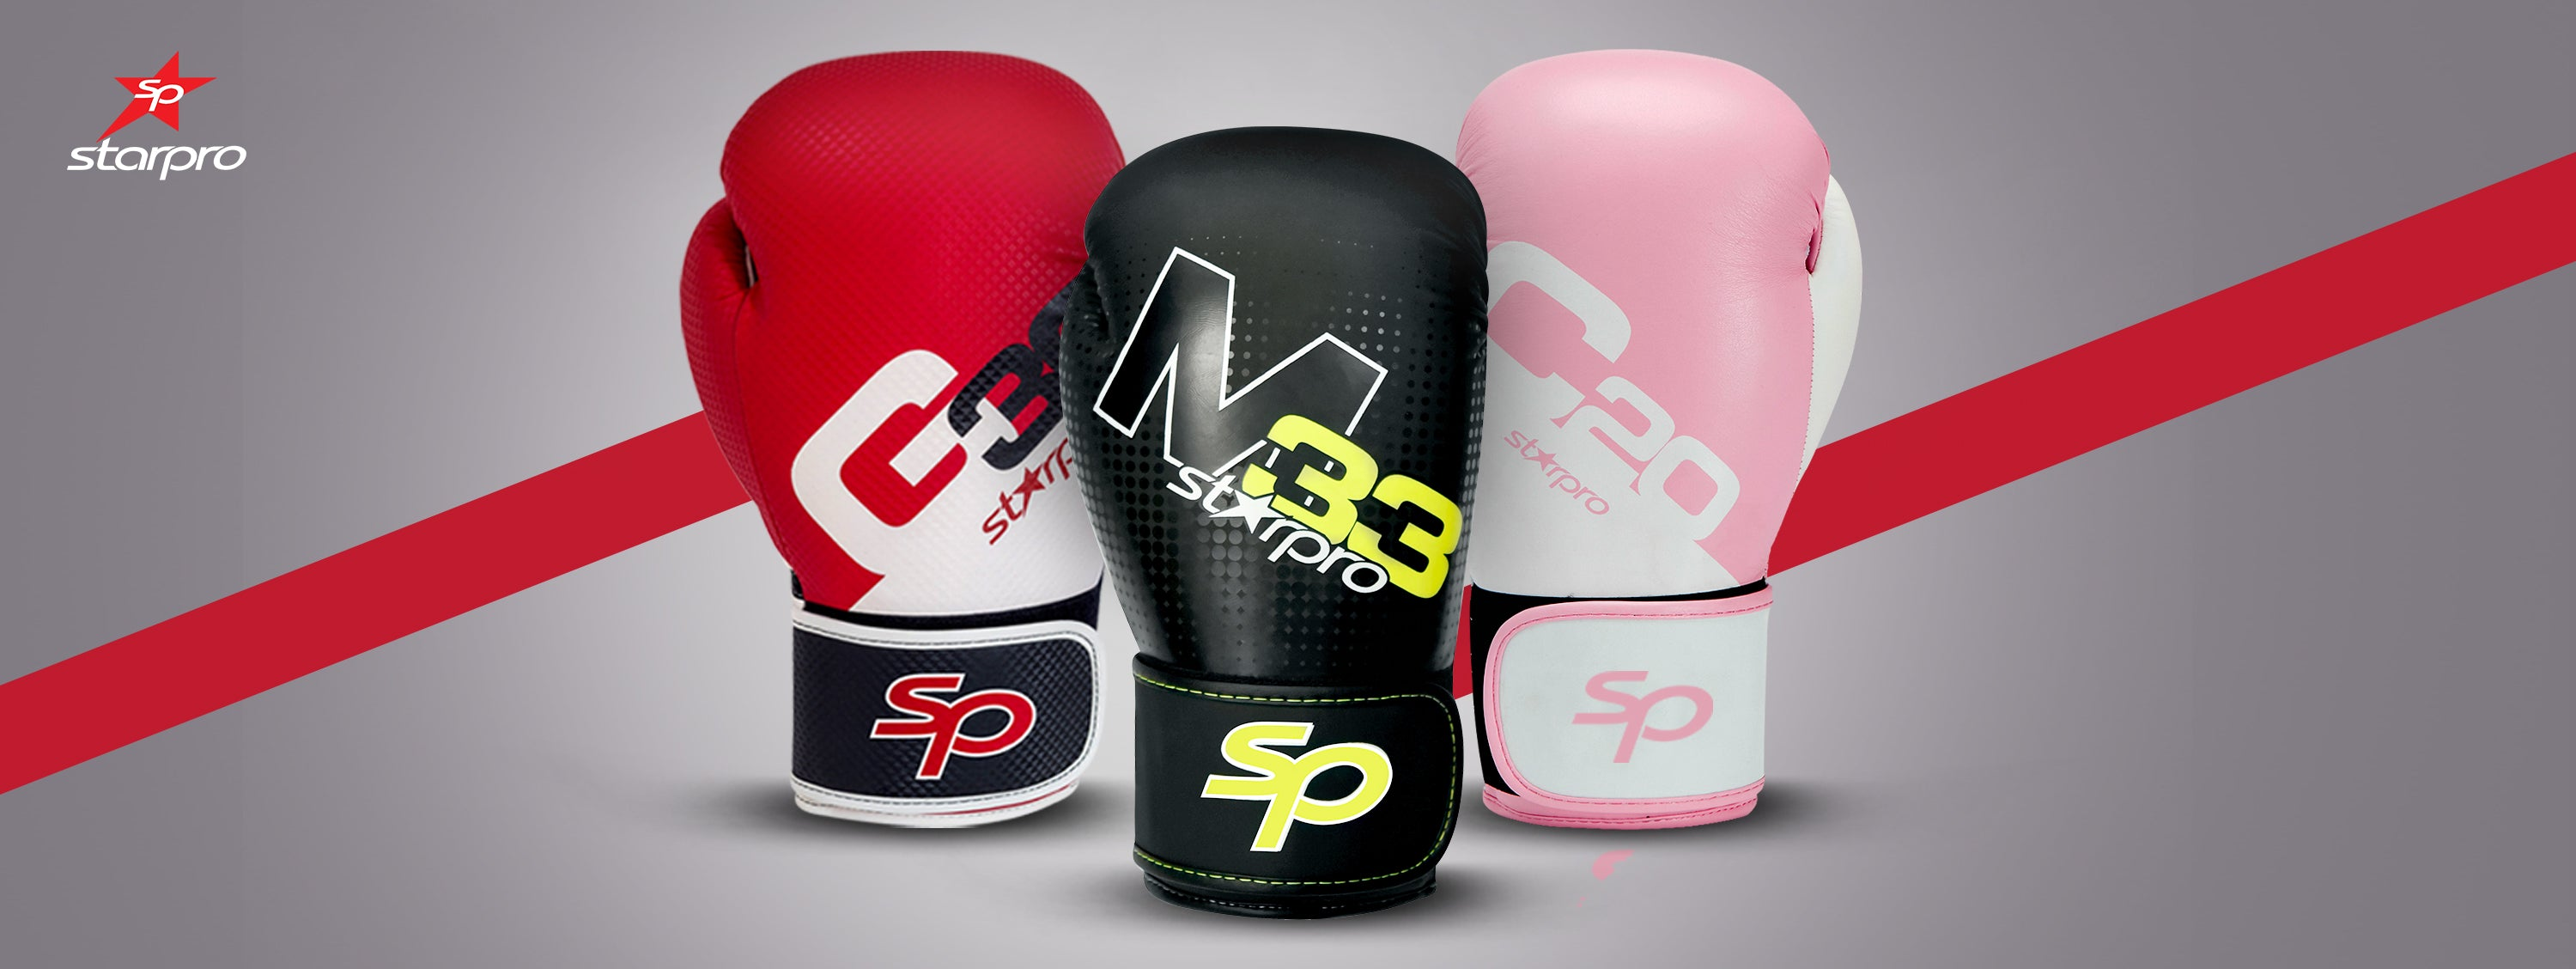 Starpro best boxing gloves for punching bag